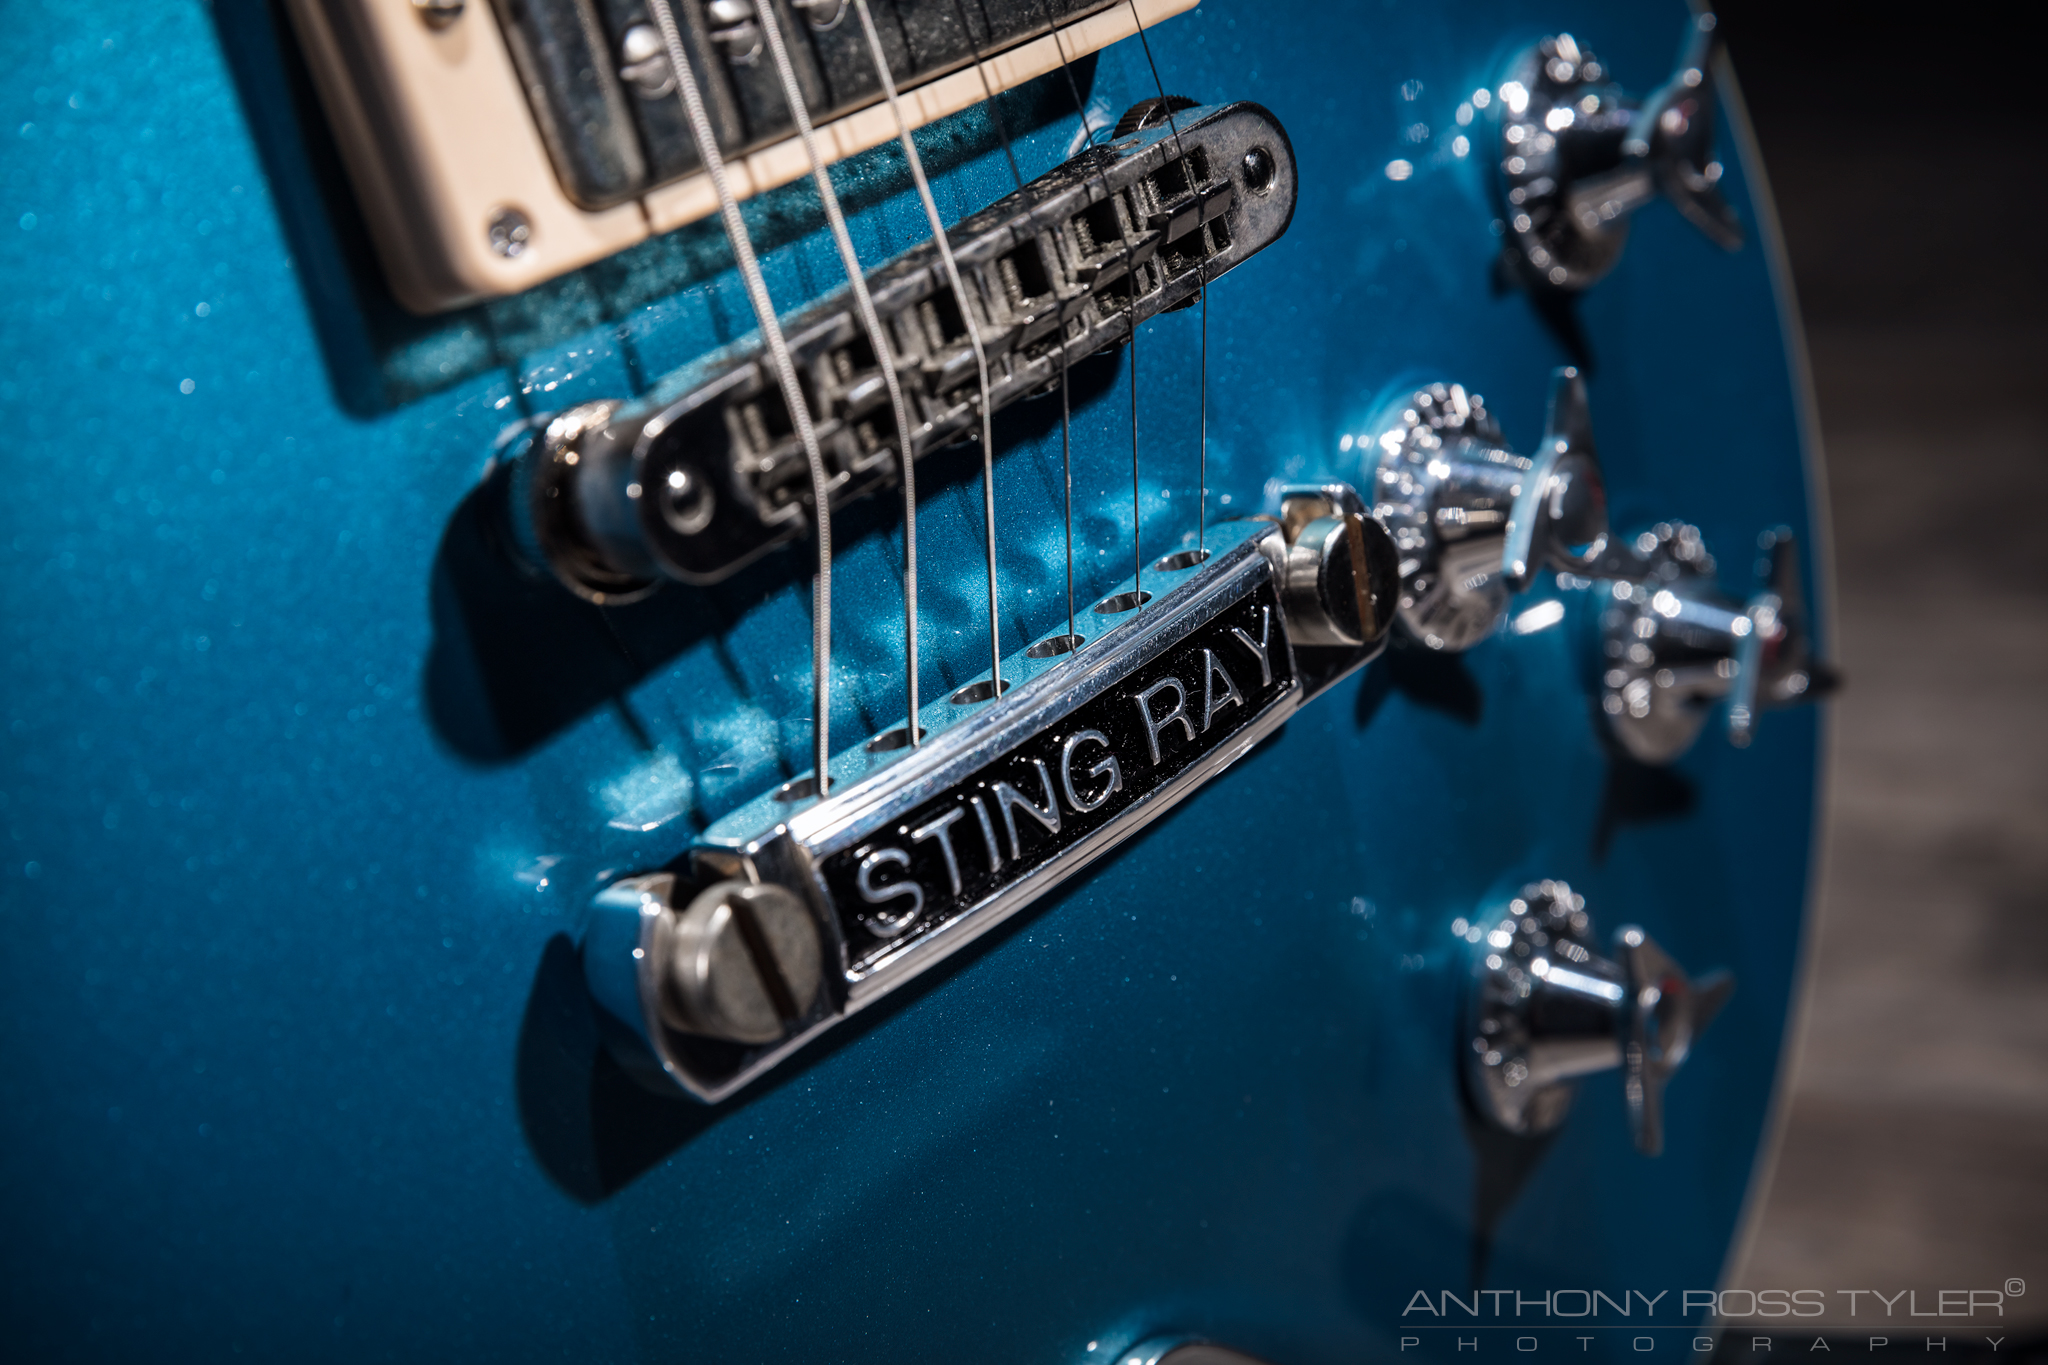 Stingray-LP-BRIDGE